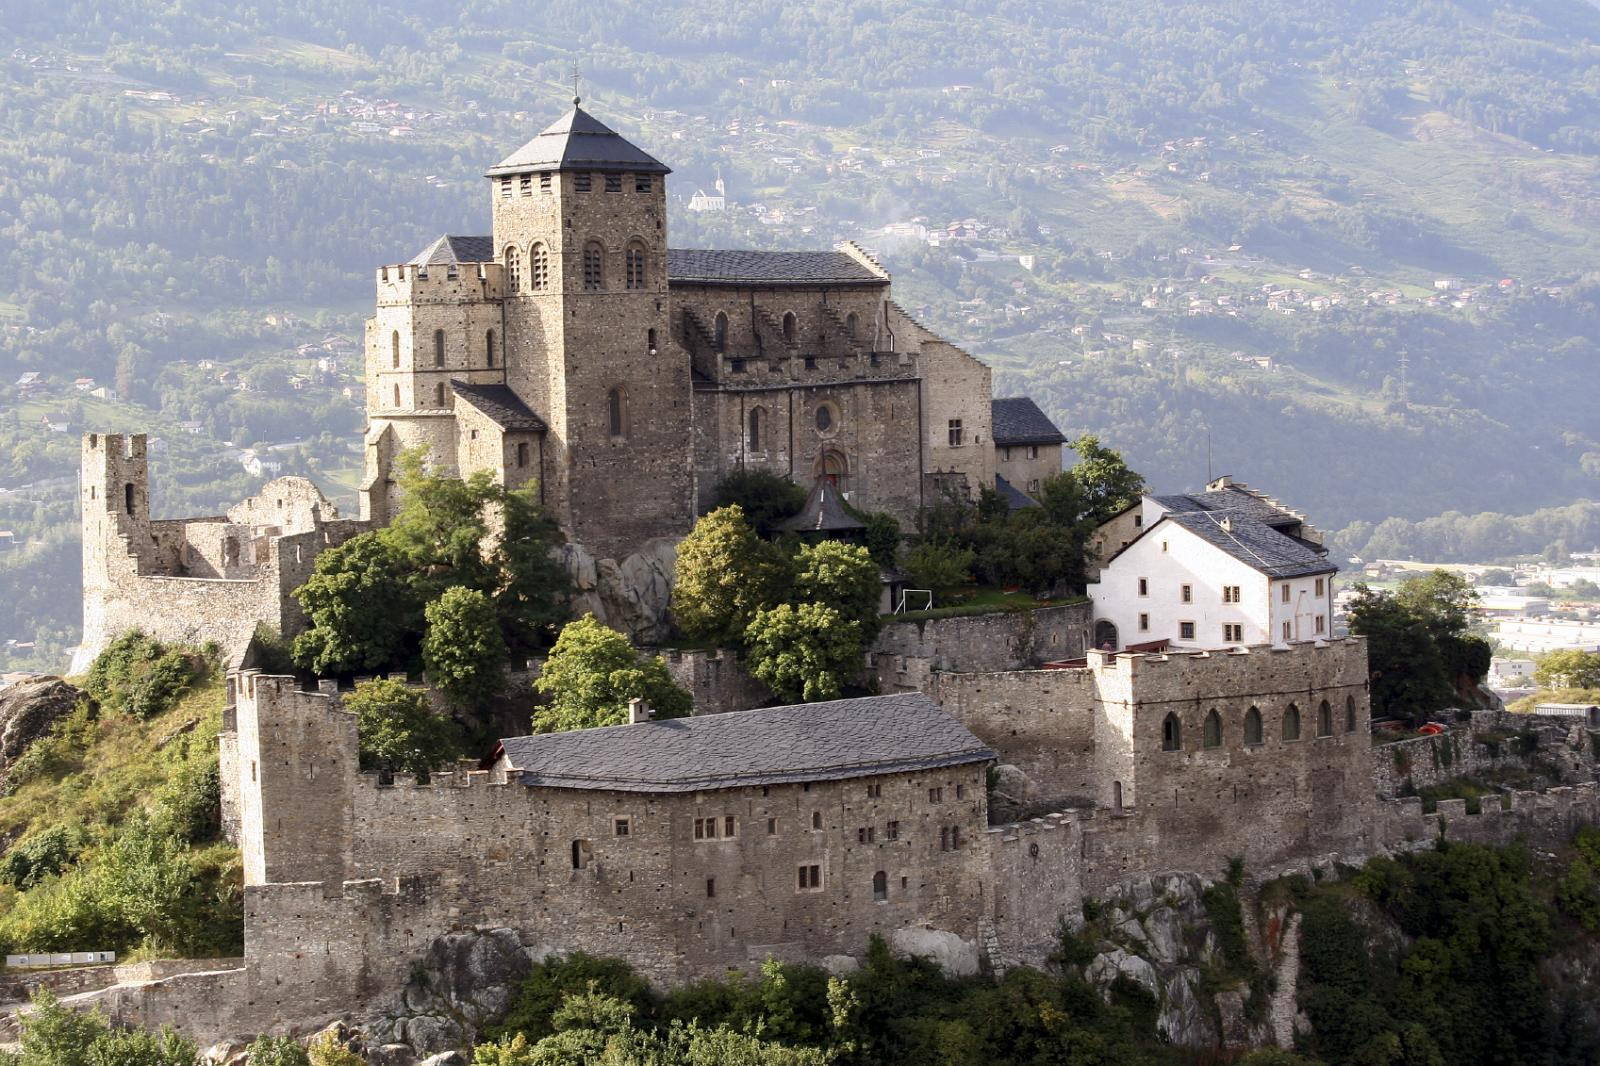 Tourbillon Castle located in Sion